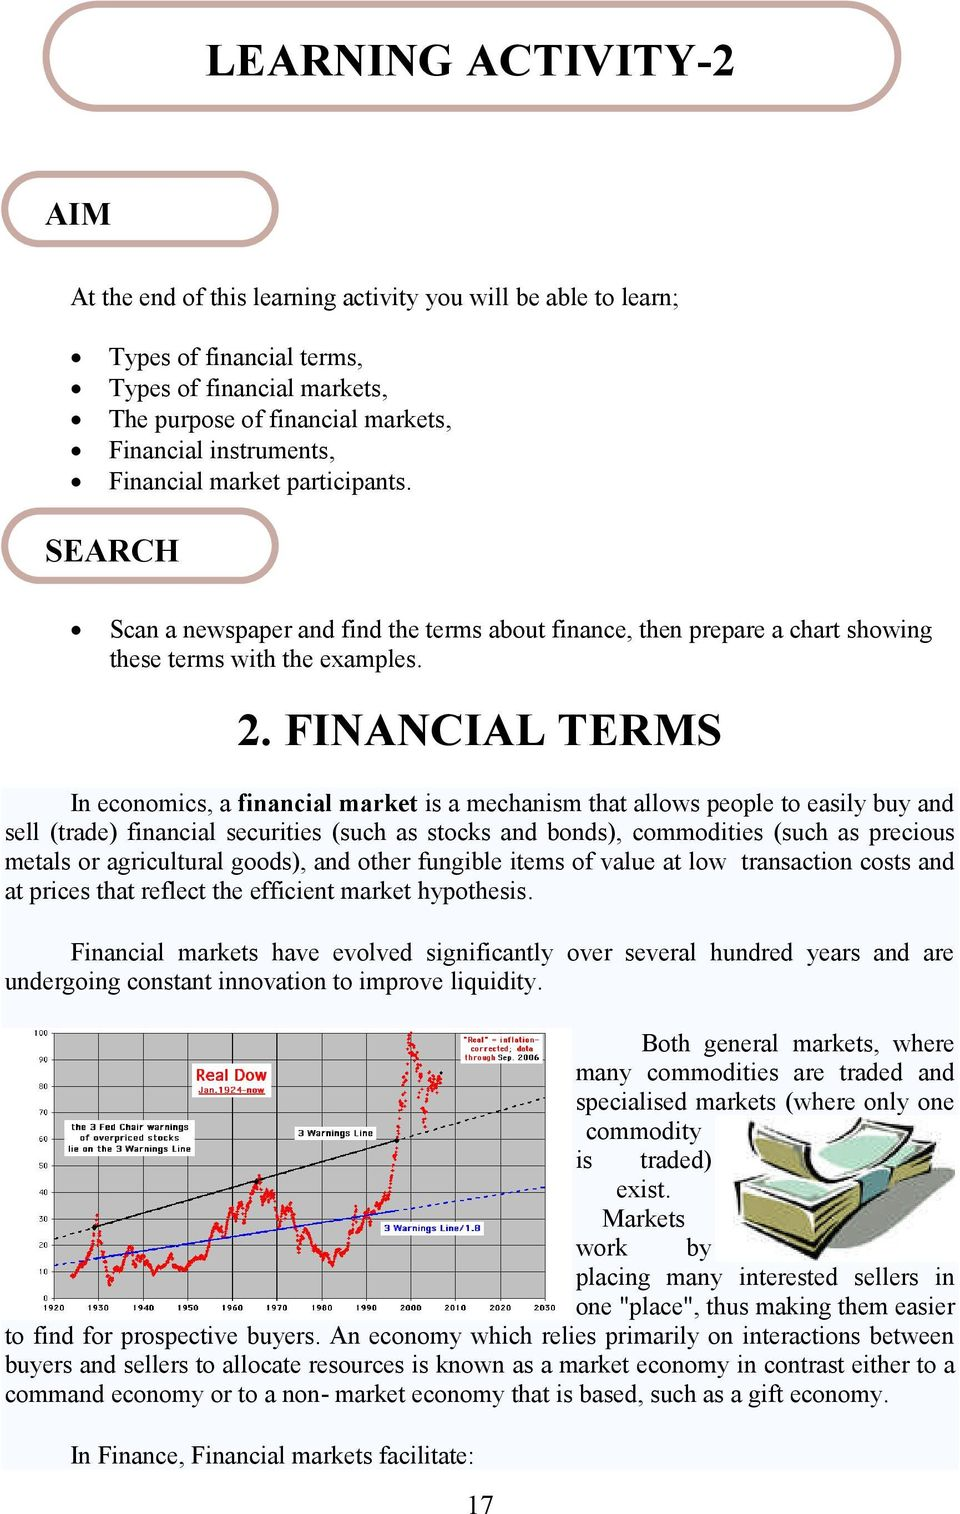 FINANCIAL TERMS In economics, a financial market is a mechanism that allows people to easily buy and sell (trade) financial securities (such as stocks and bonds), commodities (such as precious metals